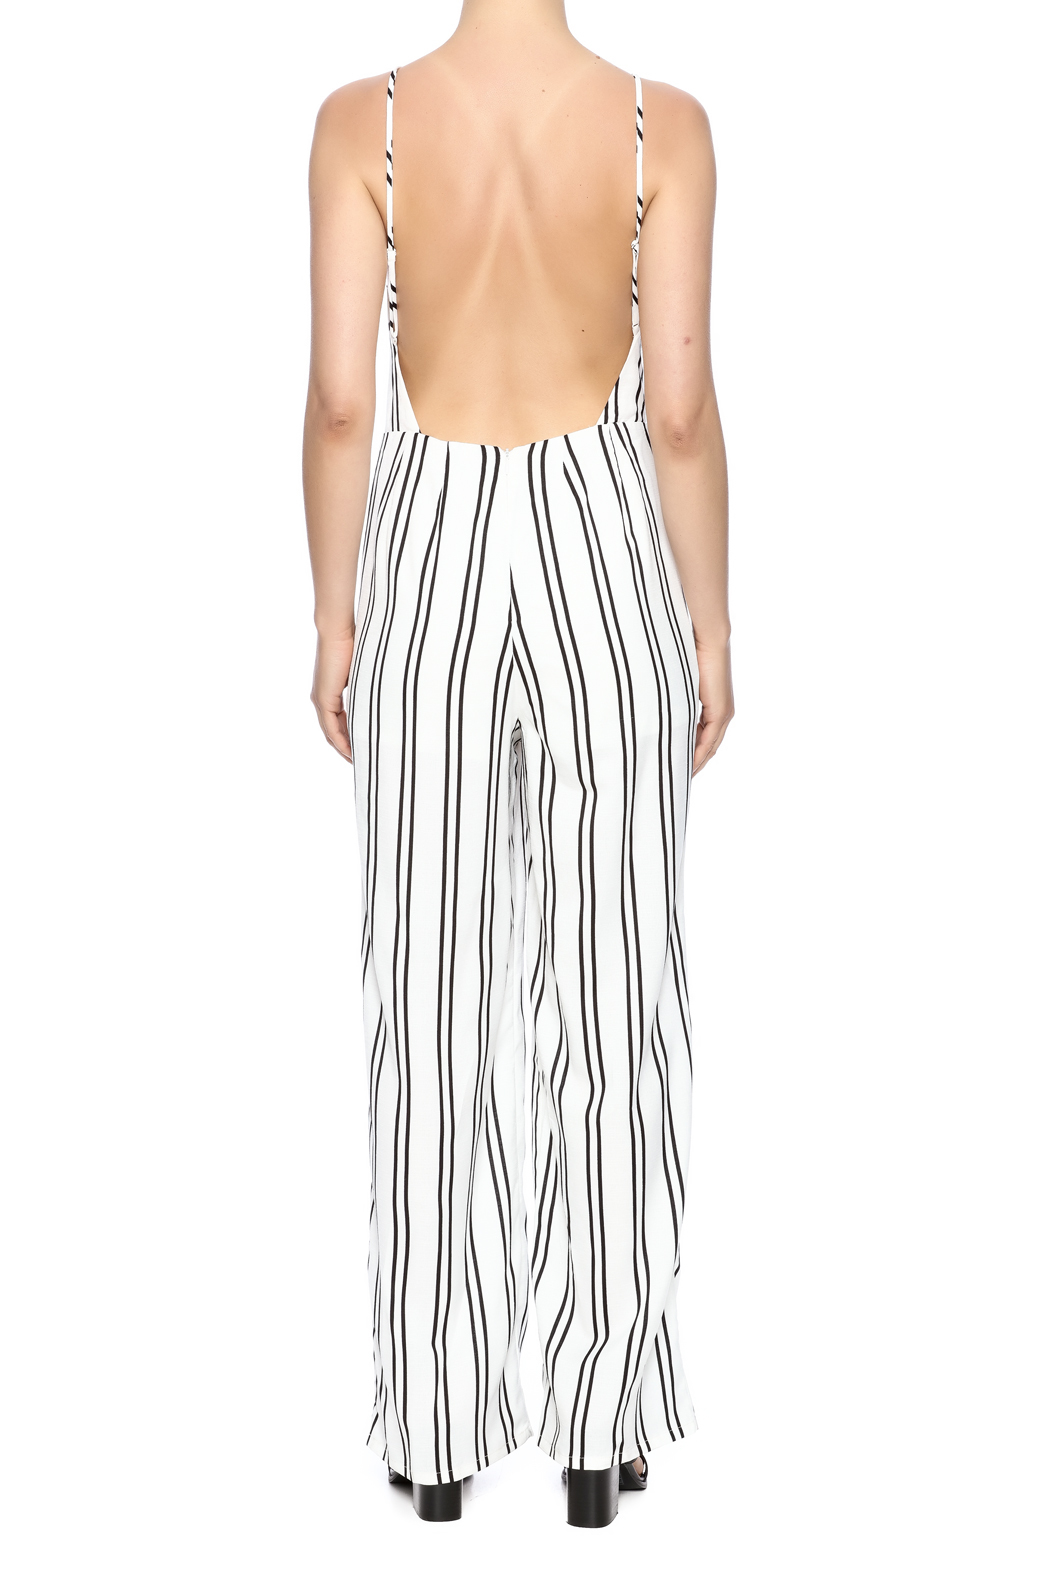 44771277f8f HYFVE Striped Jumpsuit from New York by Dor L Dor — Shoptiques